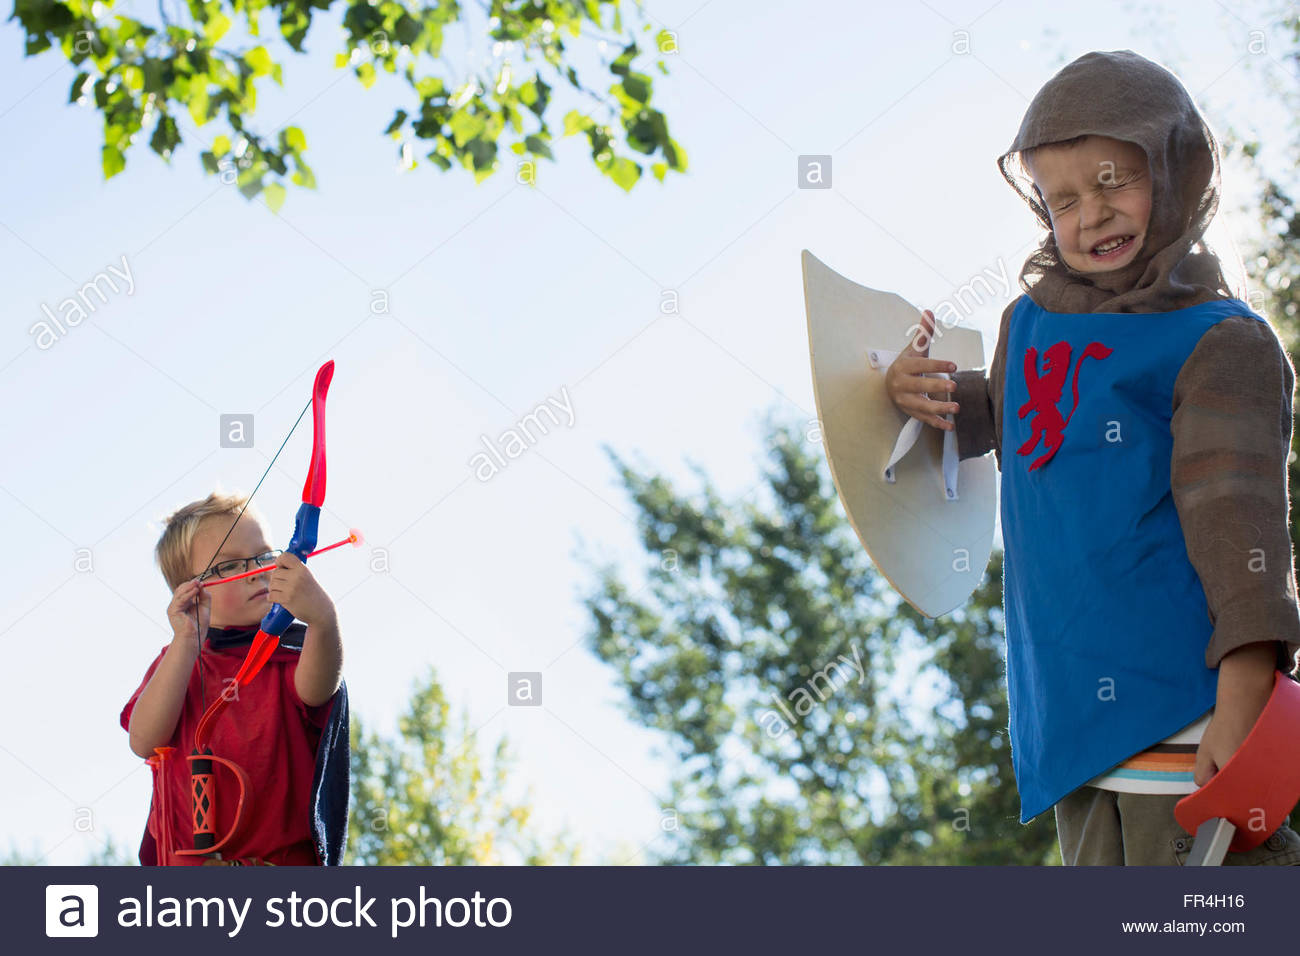 Young boys play fighting in costumes. - Stock Image